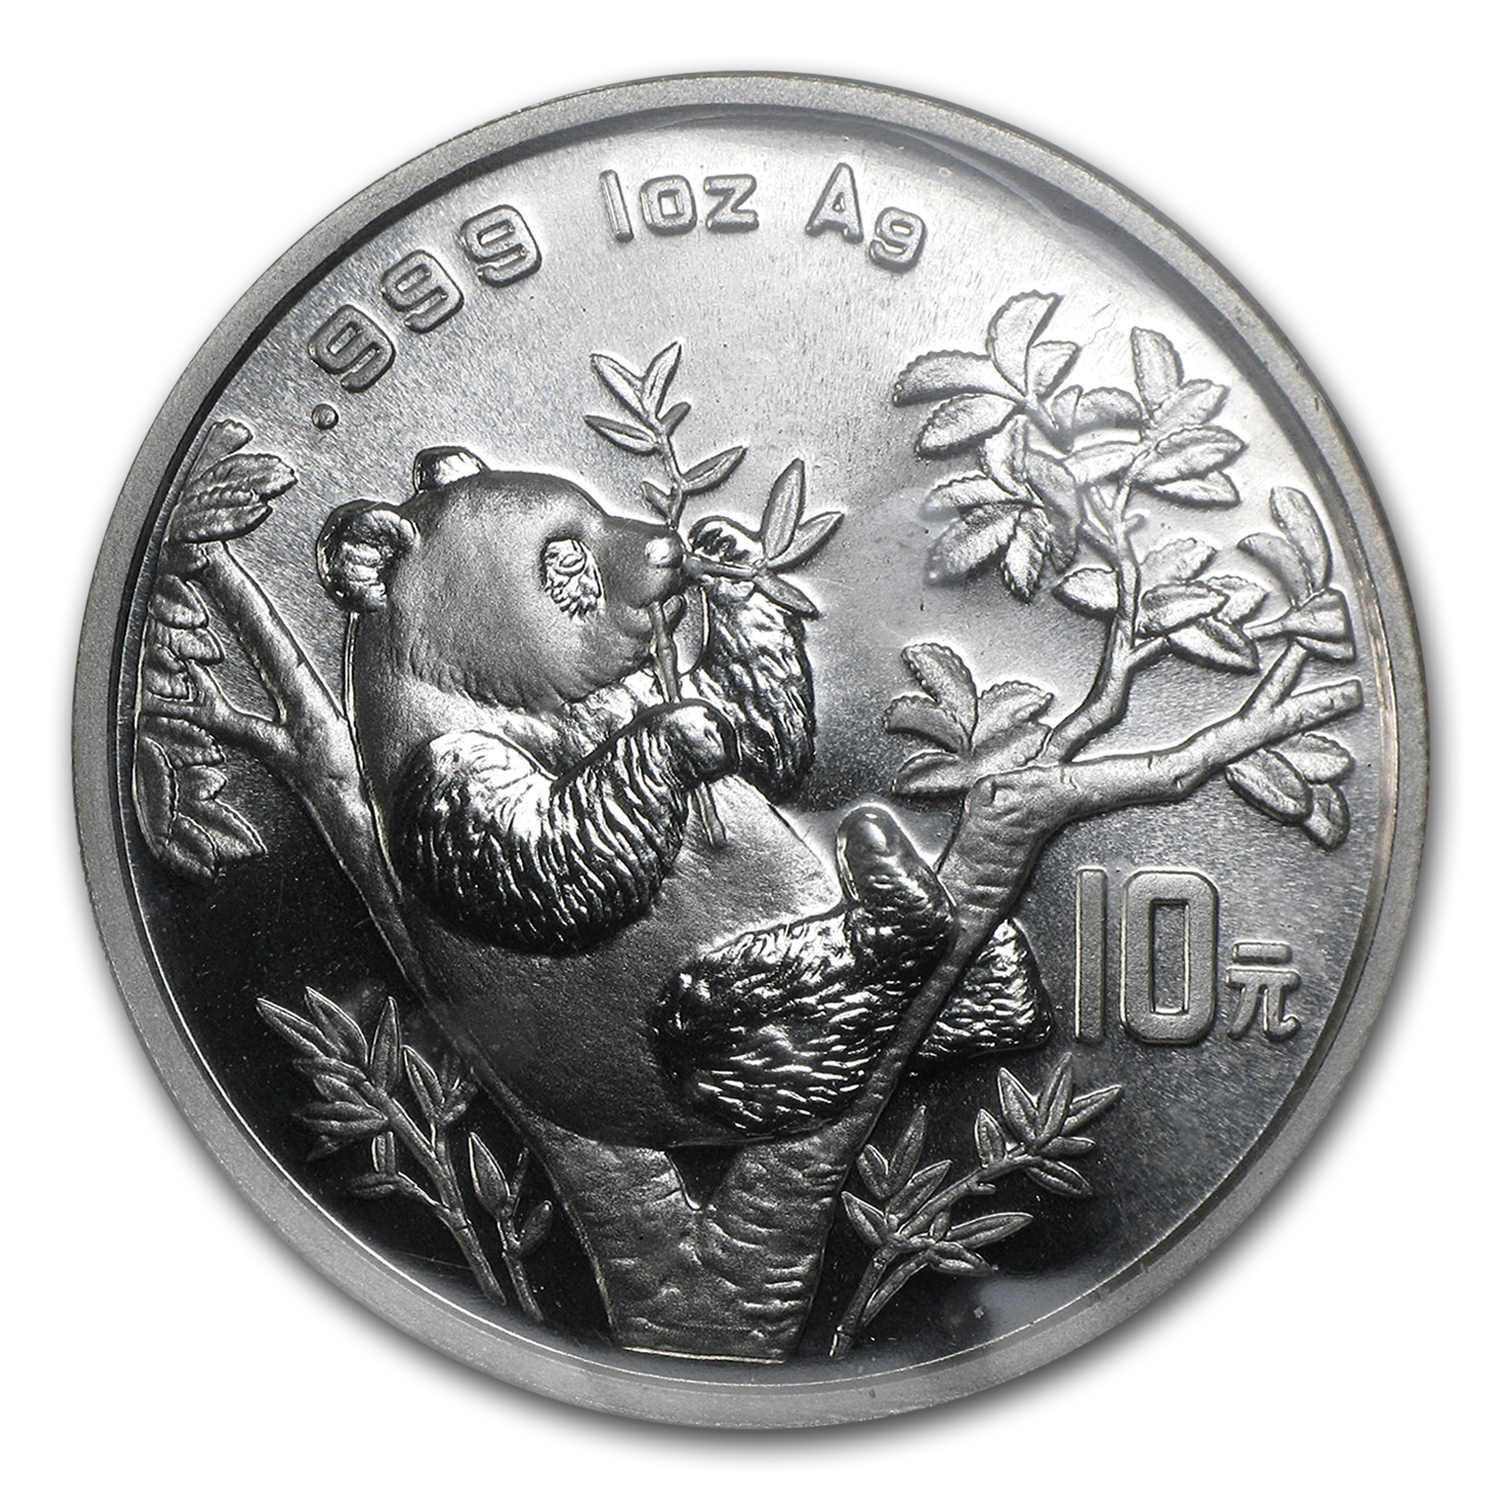 1995 1 oz Silver Chinese Panda (Sealed) - Large Date -Large Twig